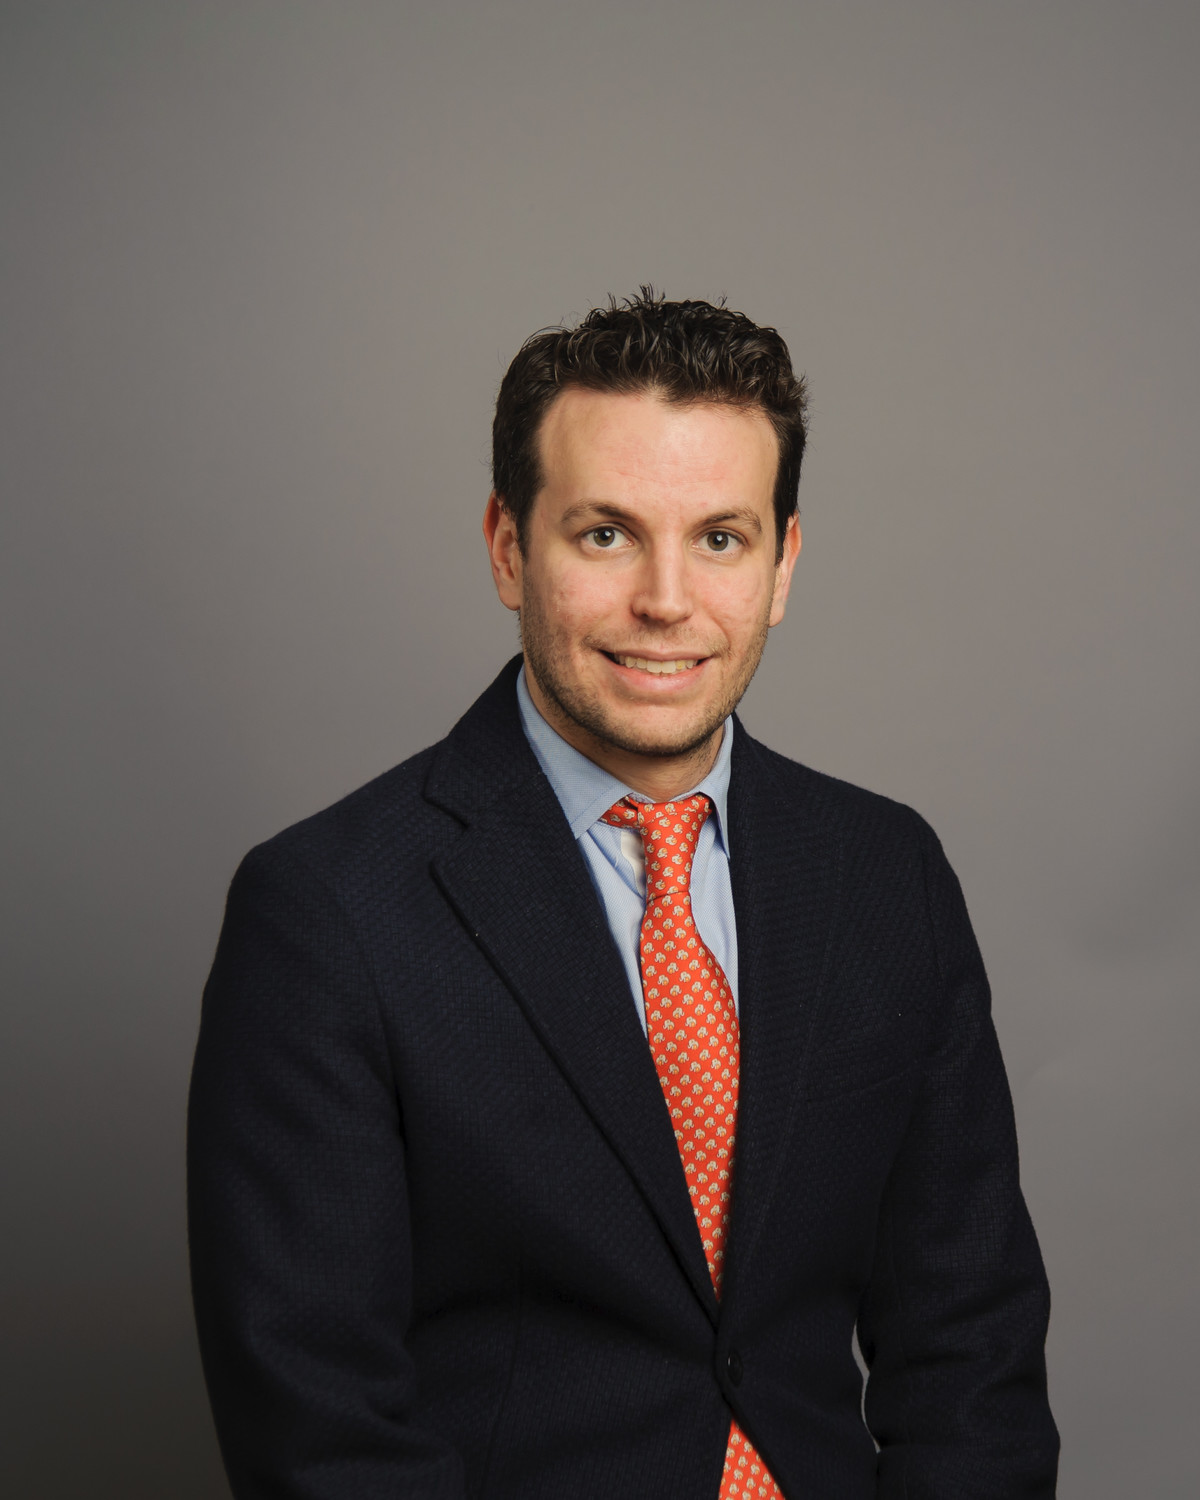 Dr. Douglas Marks